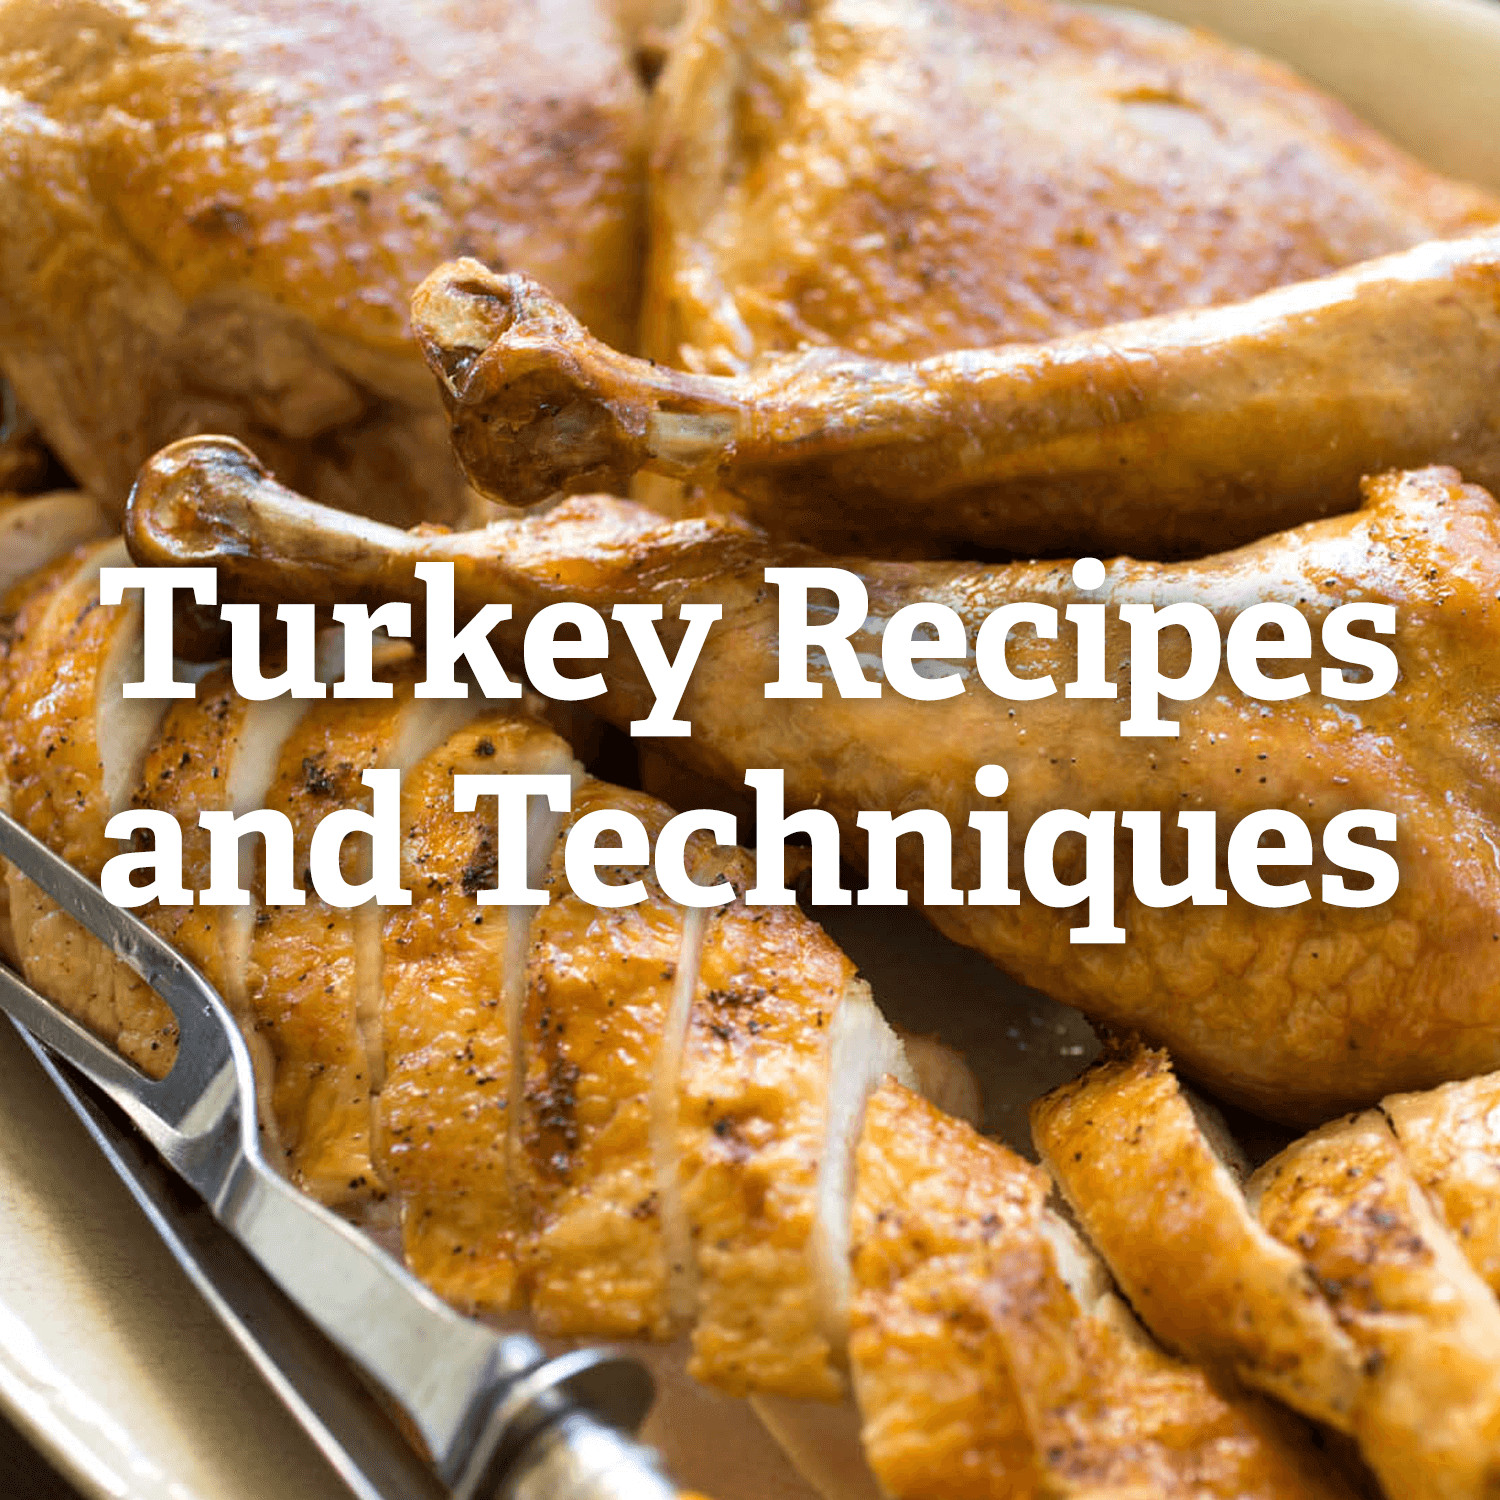 Turkey Recipes Thanksgiving  Thanksgiving Turkey Recipes and Techniques